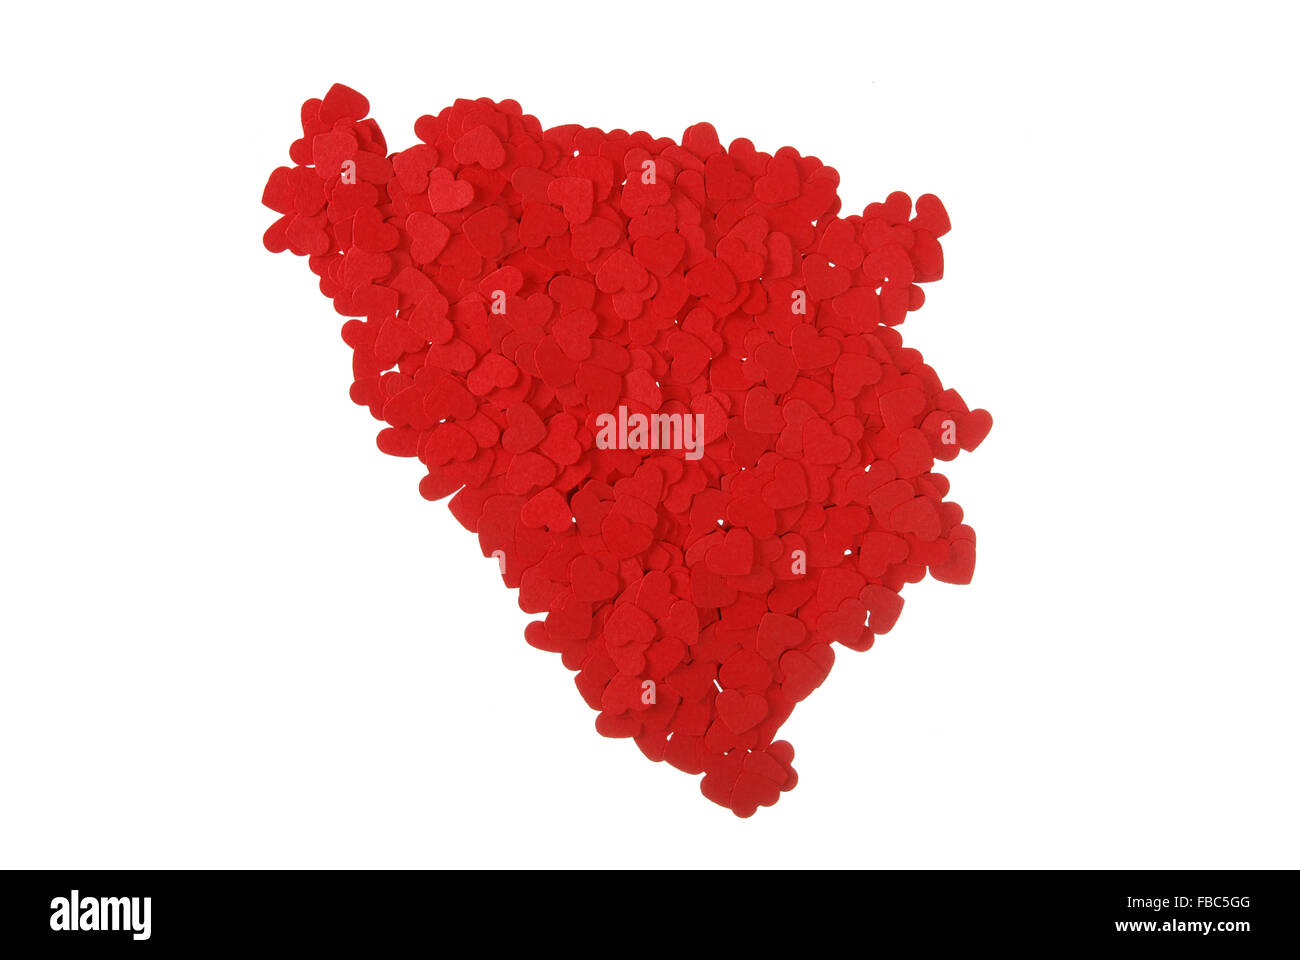 contour of the Bosnia and Herzegovina built of small red hearts on a white background - Stock Image